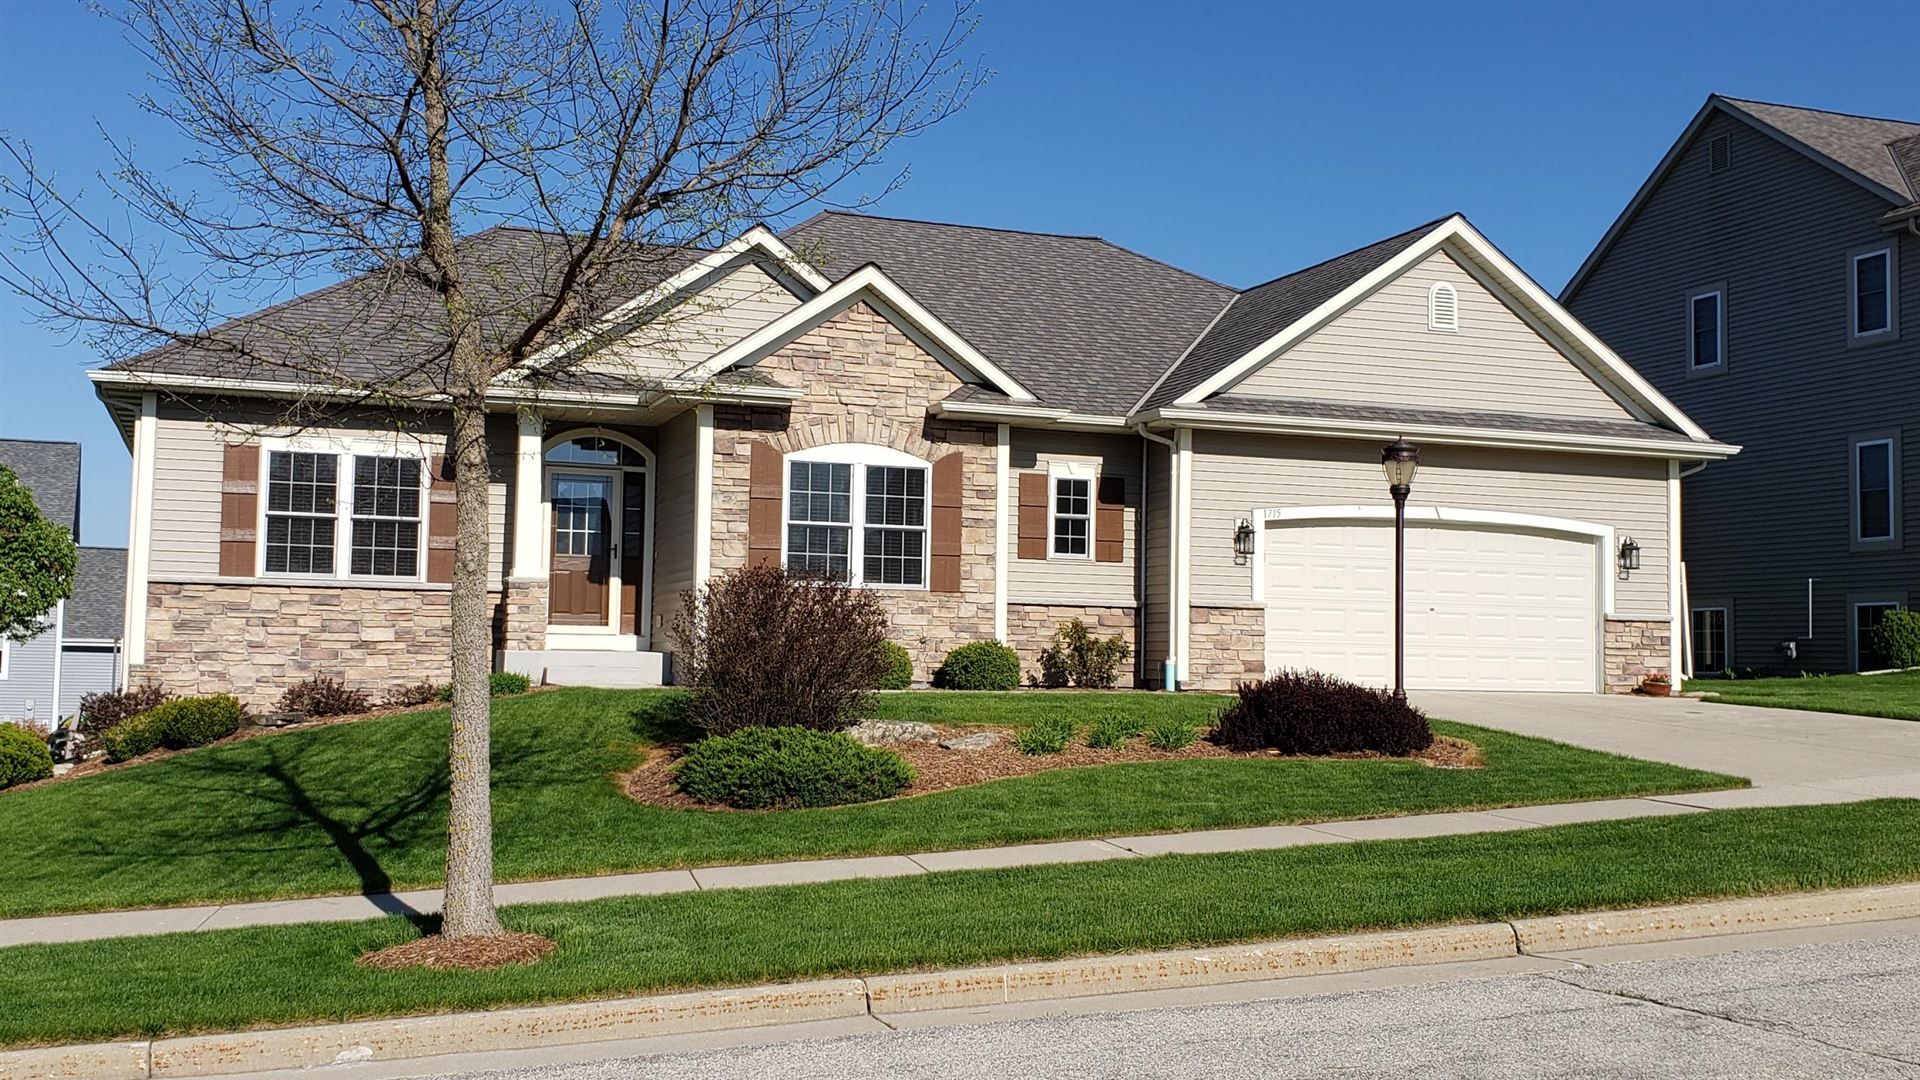 1715 Rockridge Way, Waukesha, WI 53188 - #: 1690994